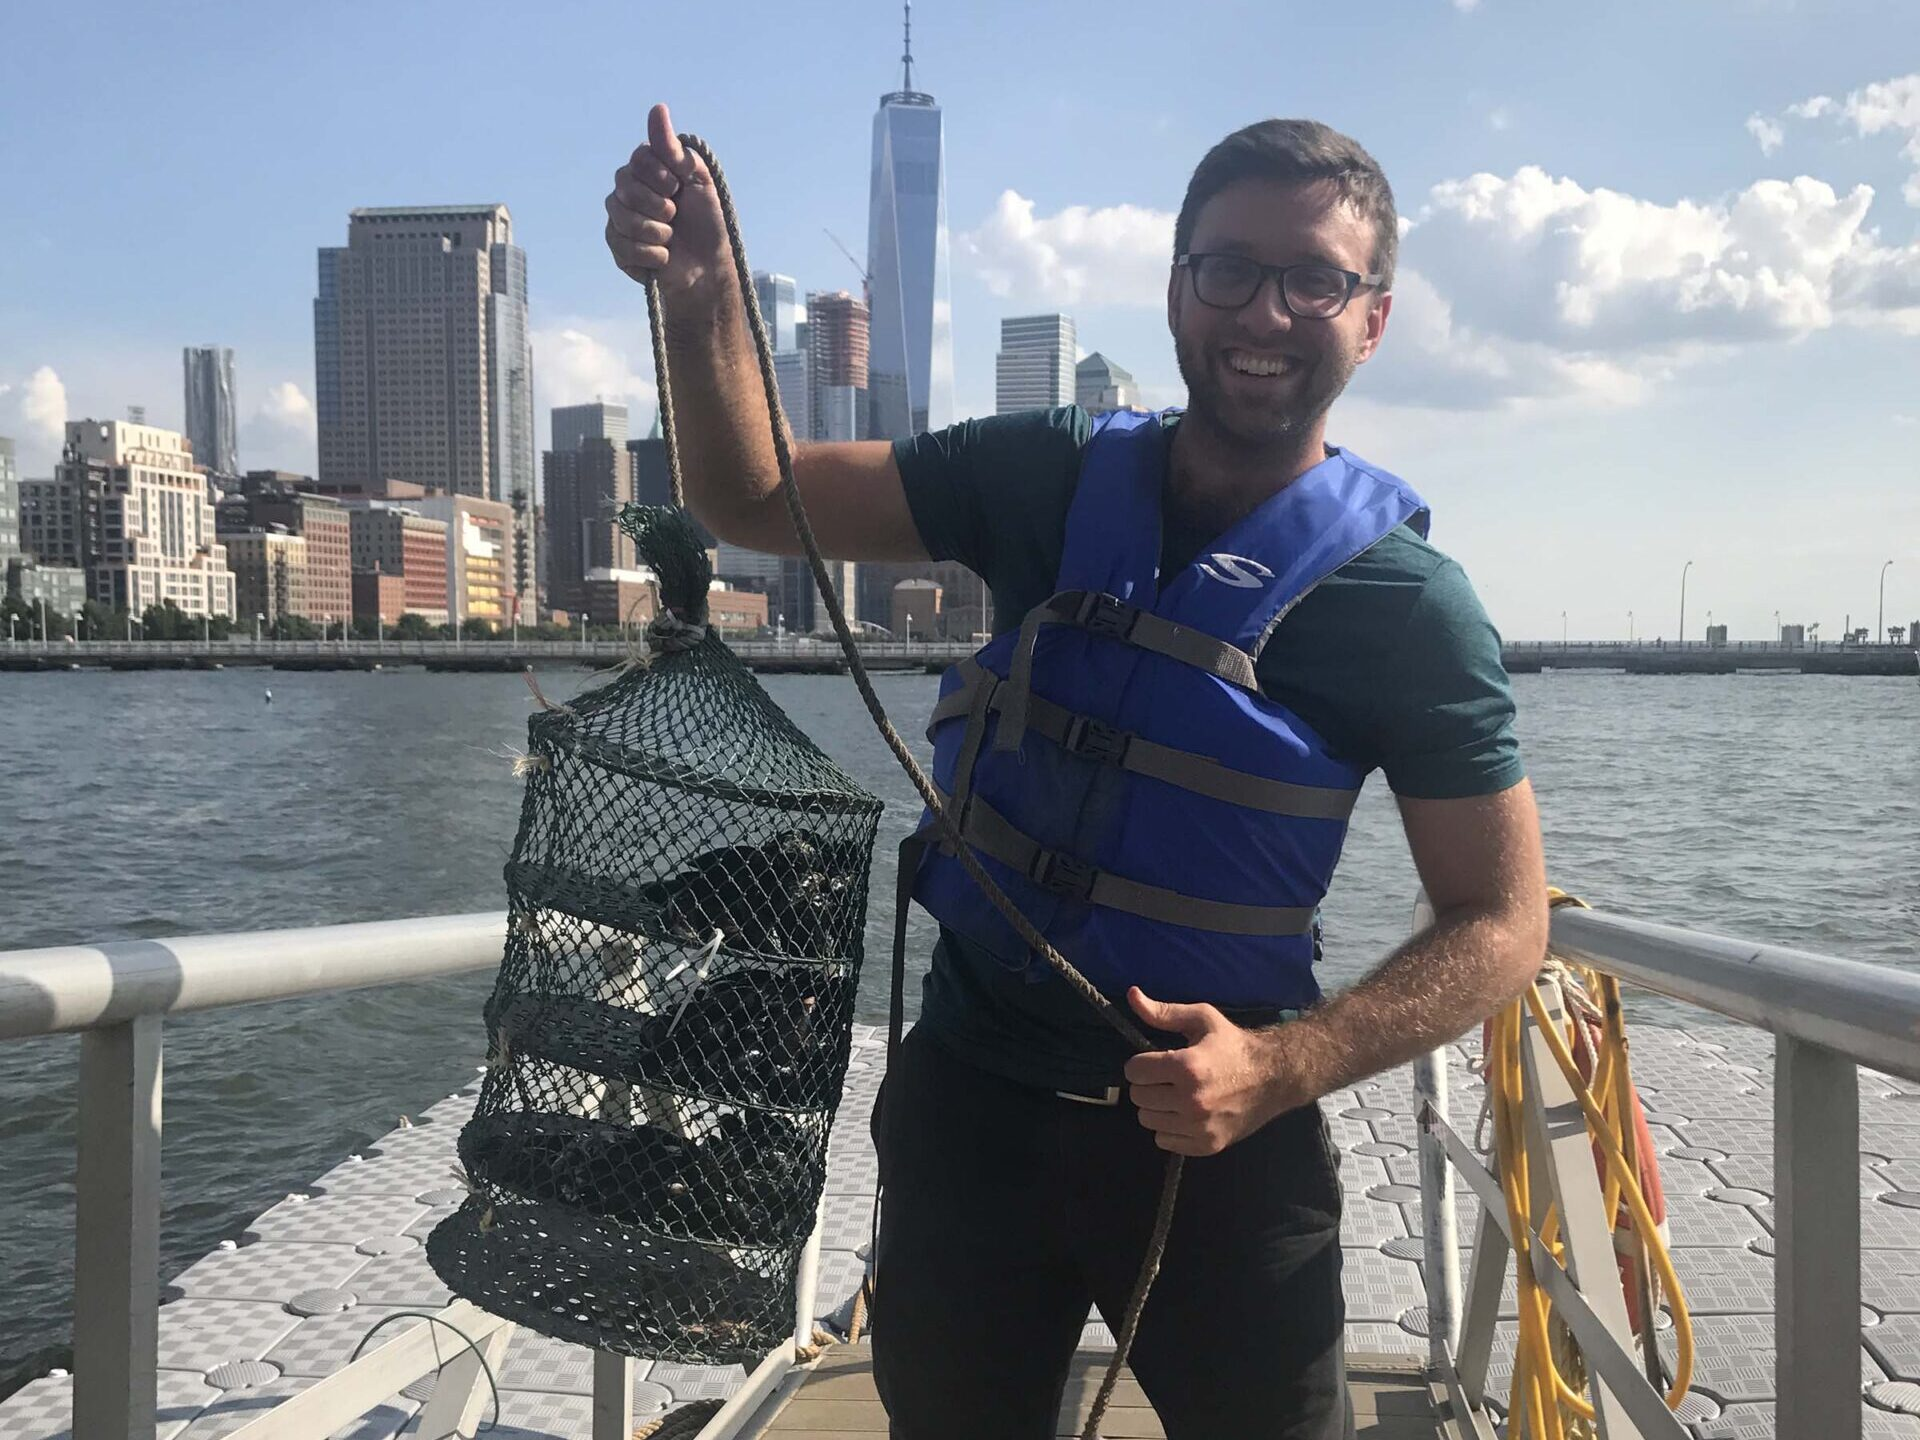 A visiting scientist shows the lobster traps